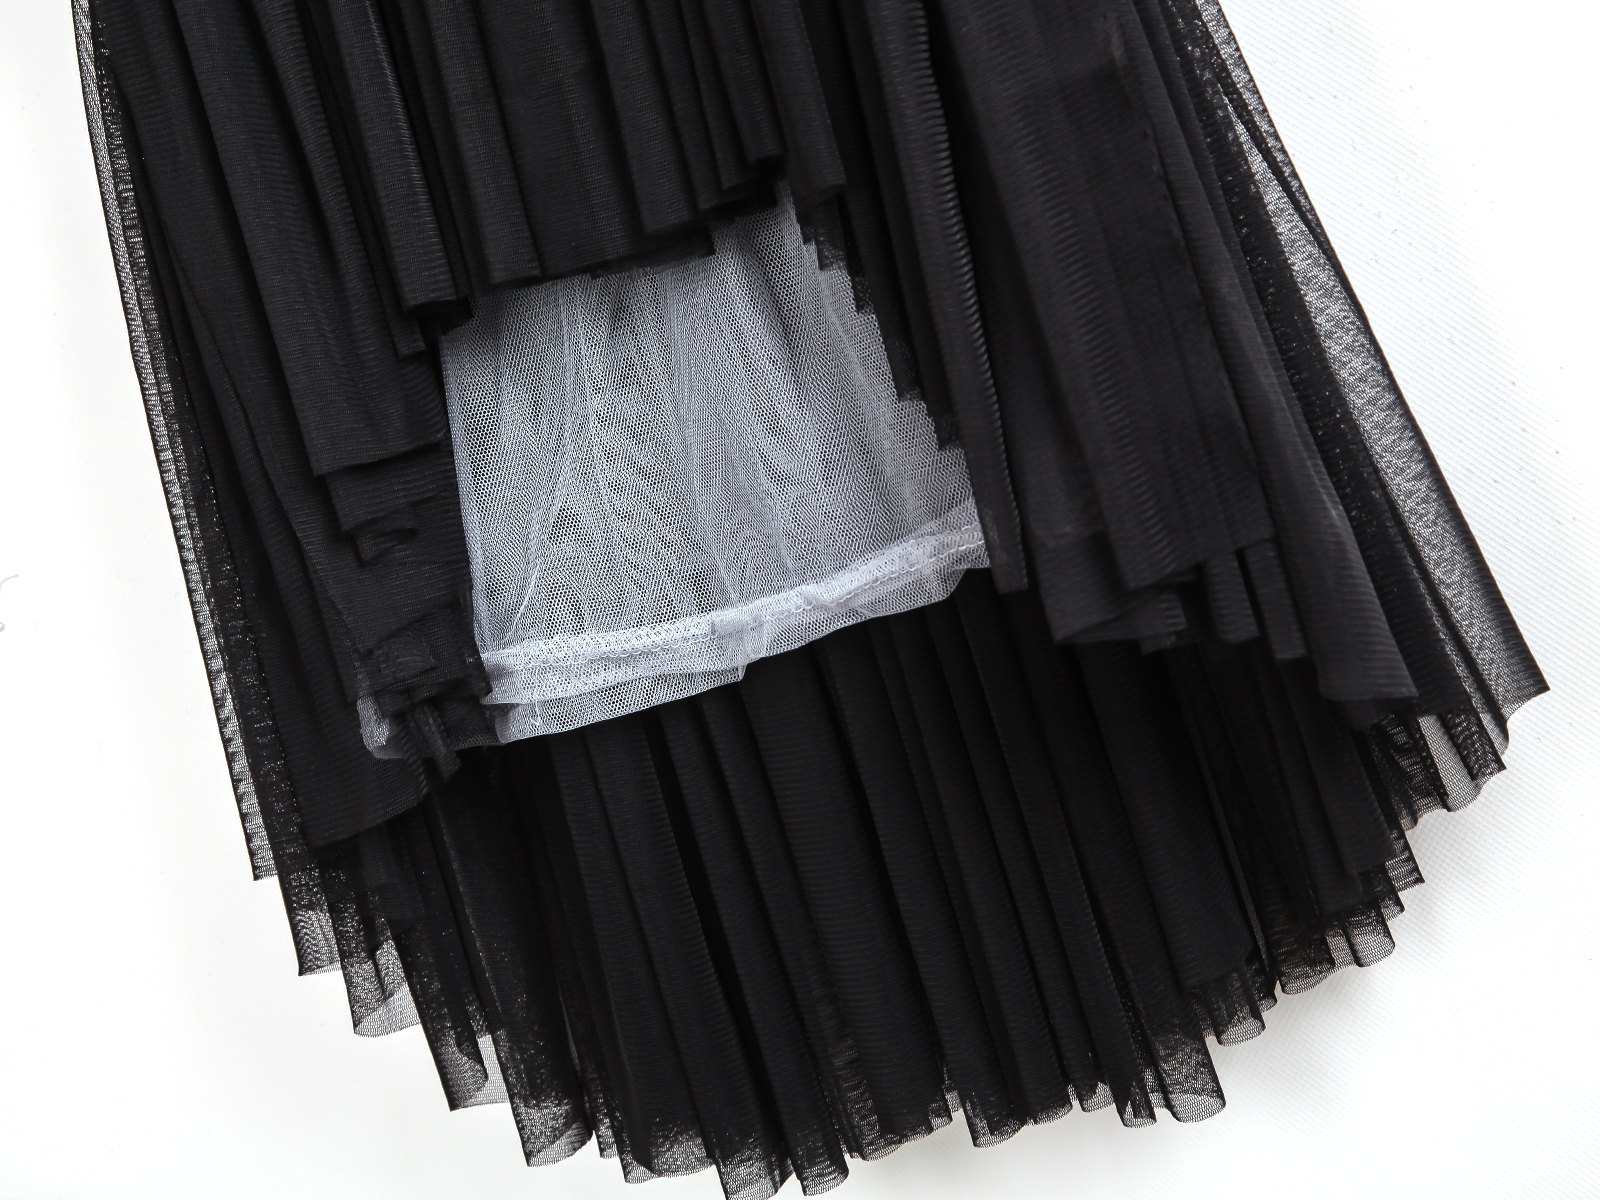 Black Contrast Sheer Mesh Yoke Pleated Blouse - Sheinside.com